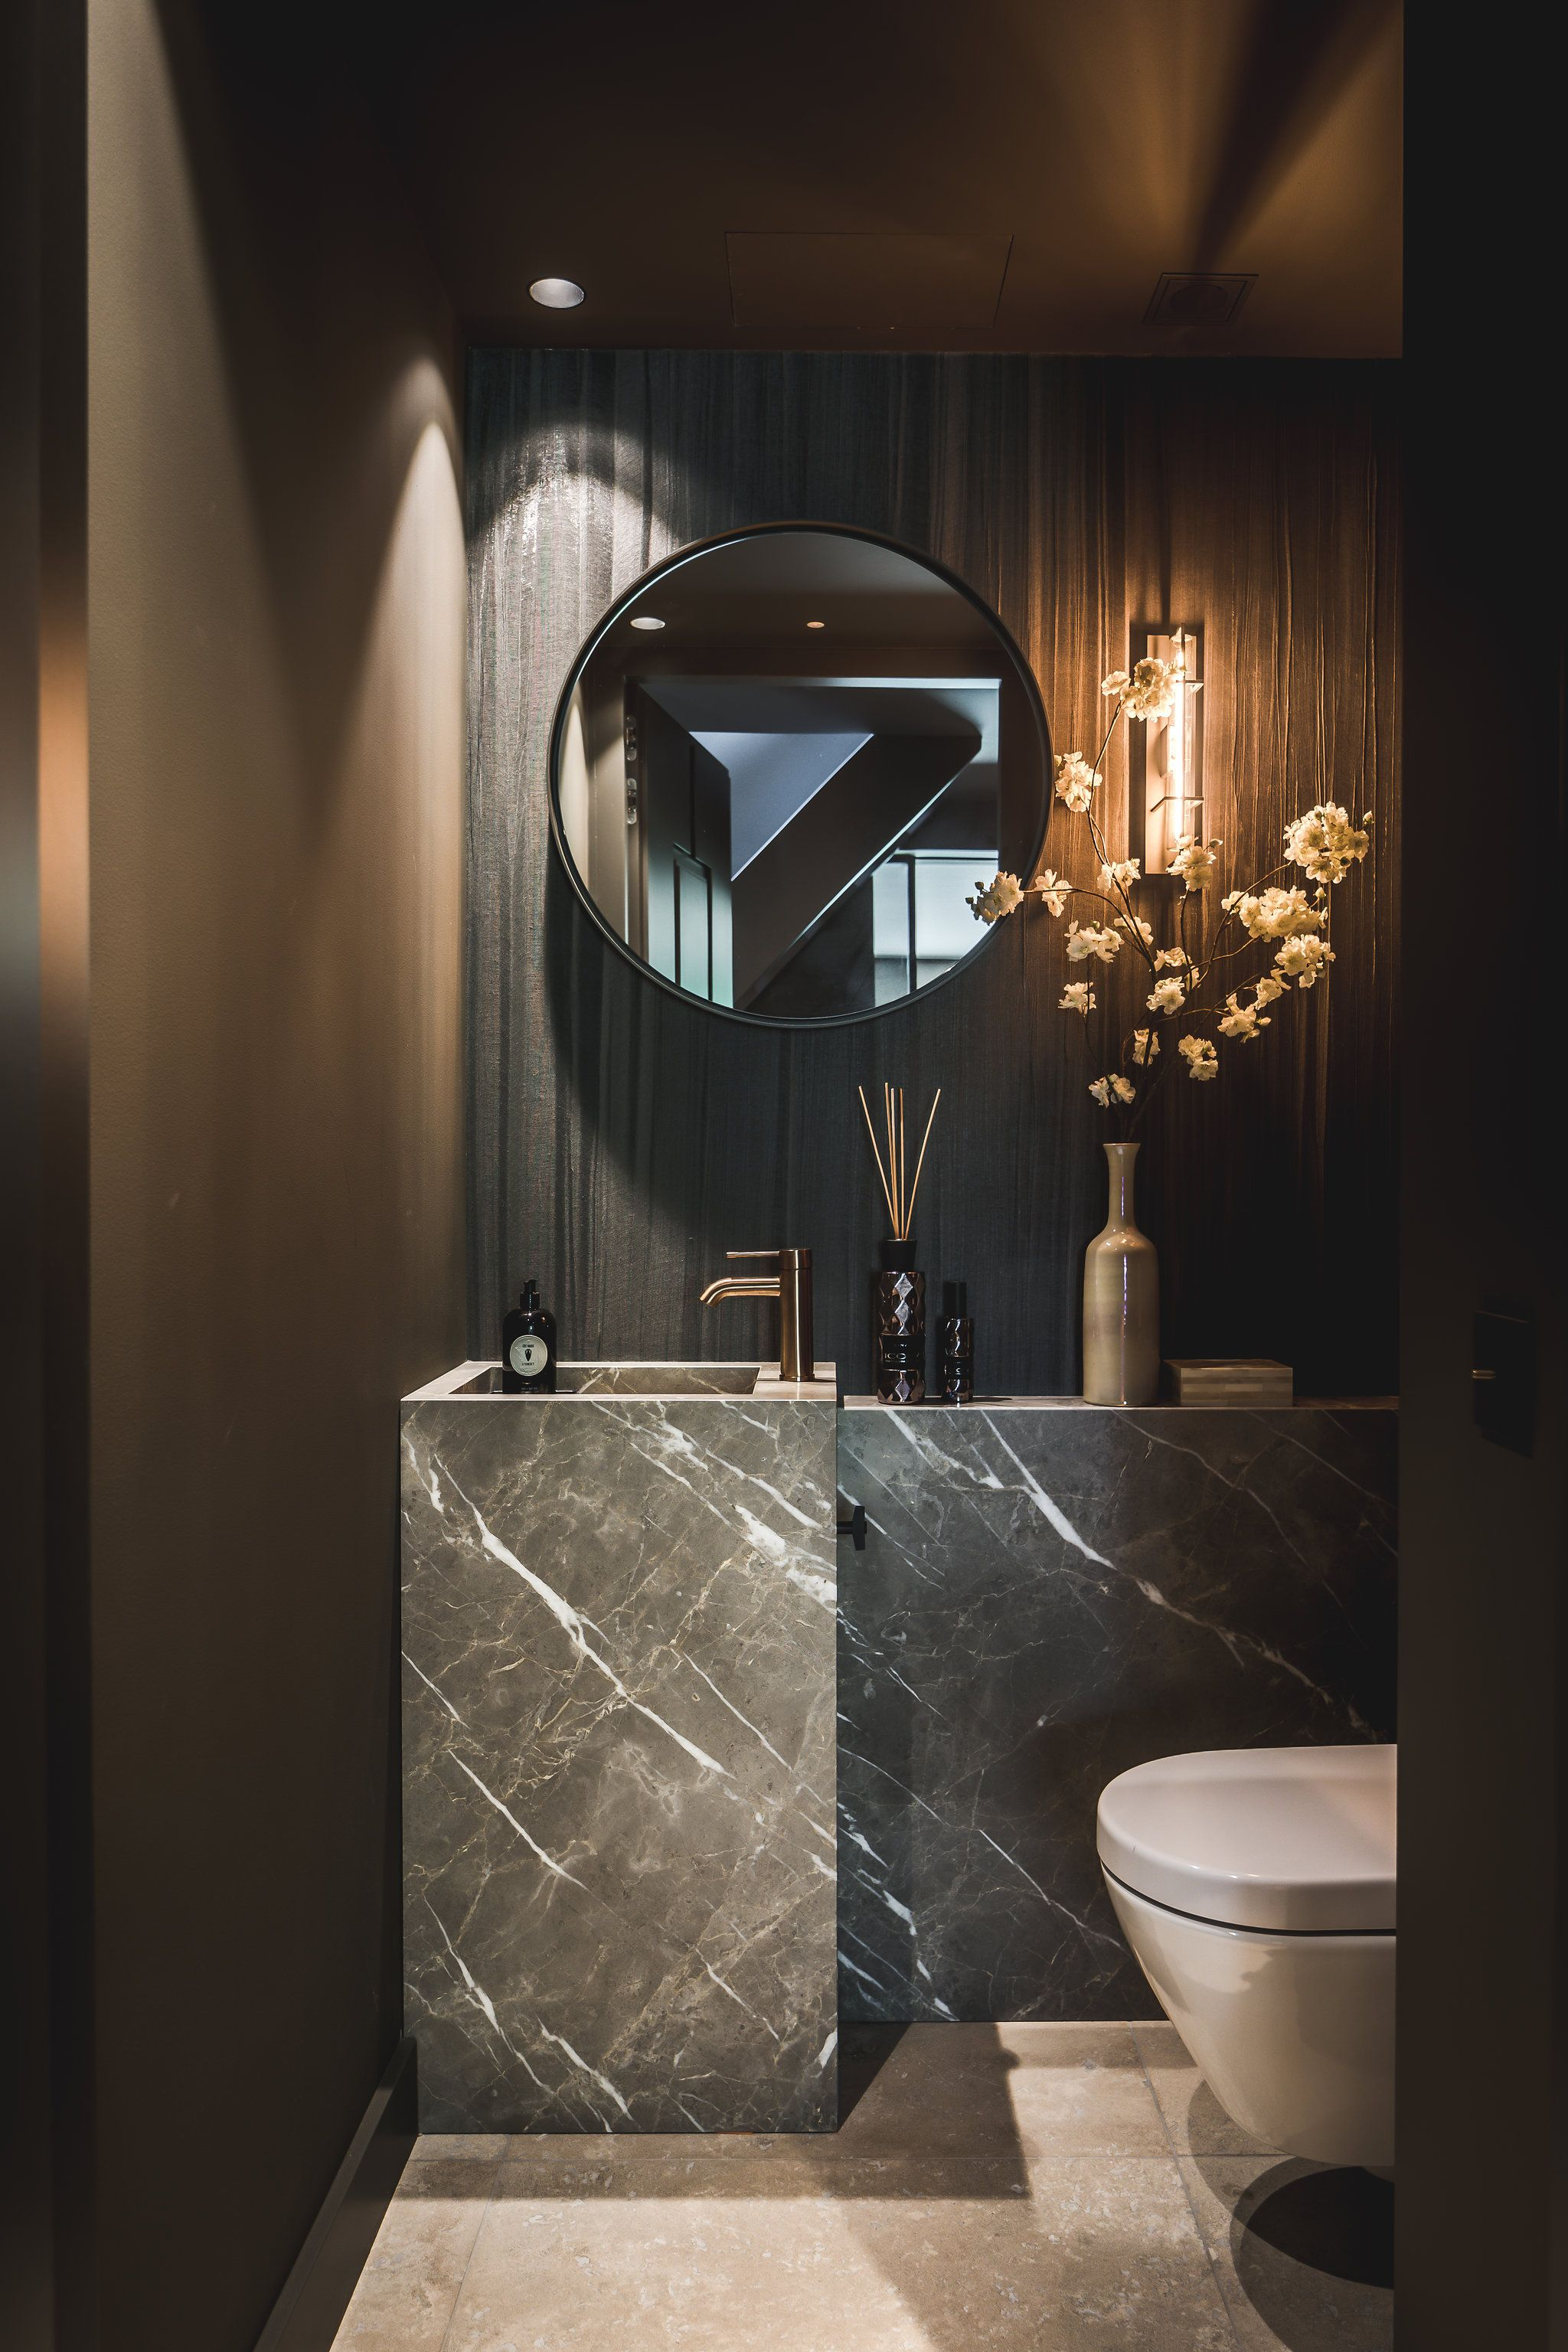 Kabaz Laren Architectenbureau Laren Kabaz Bathrooms In 2019 Baños Modernos